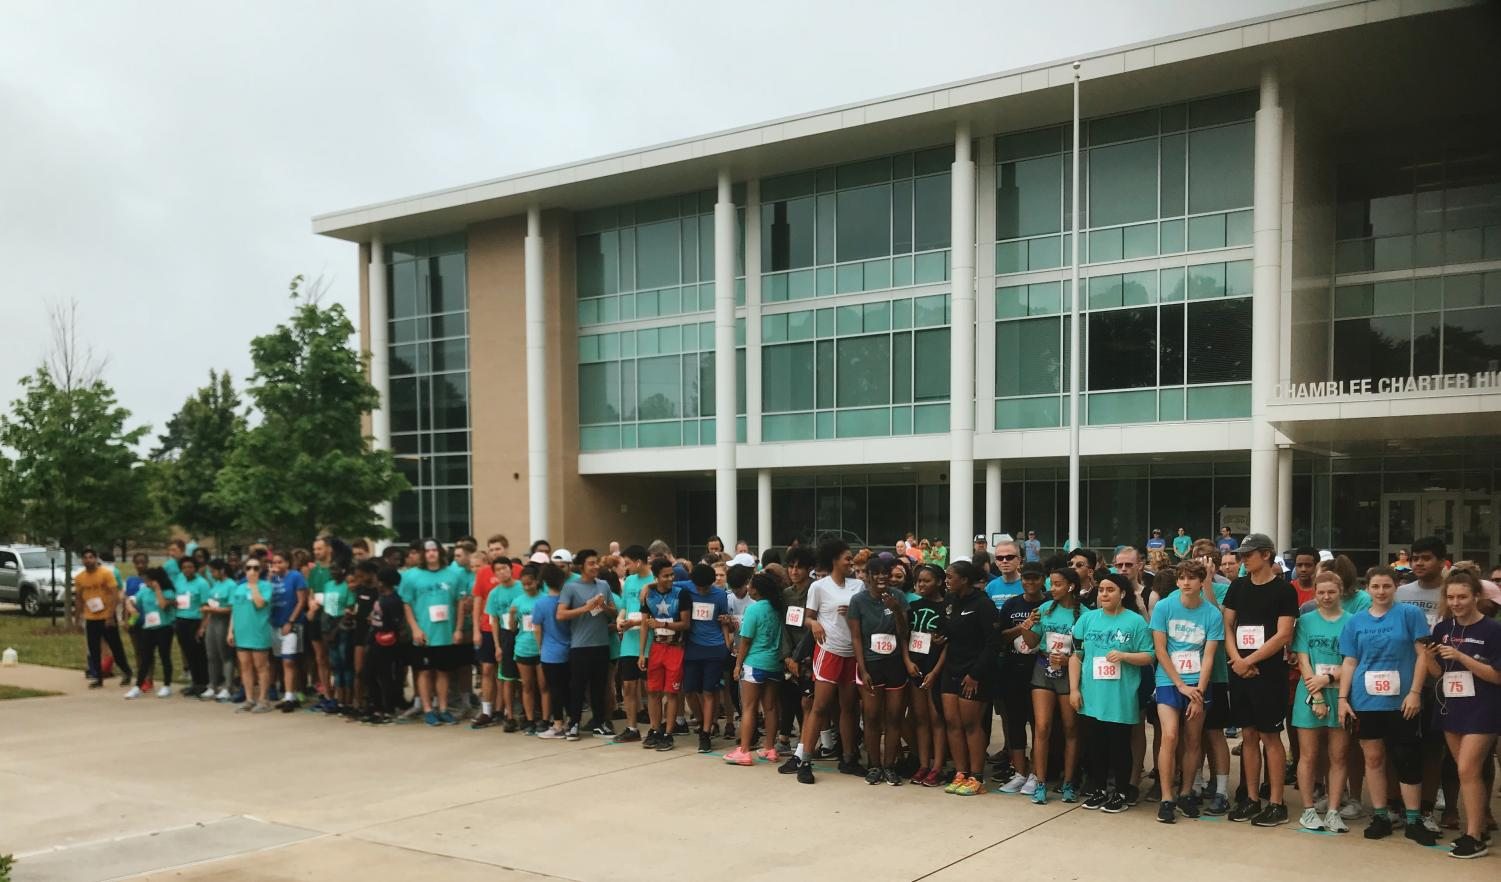 CCHS Comes Together For the Cox Trot